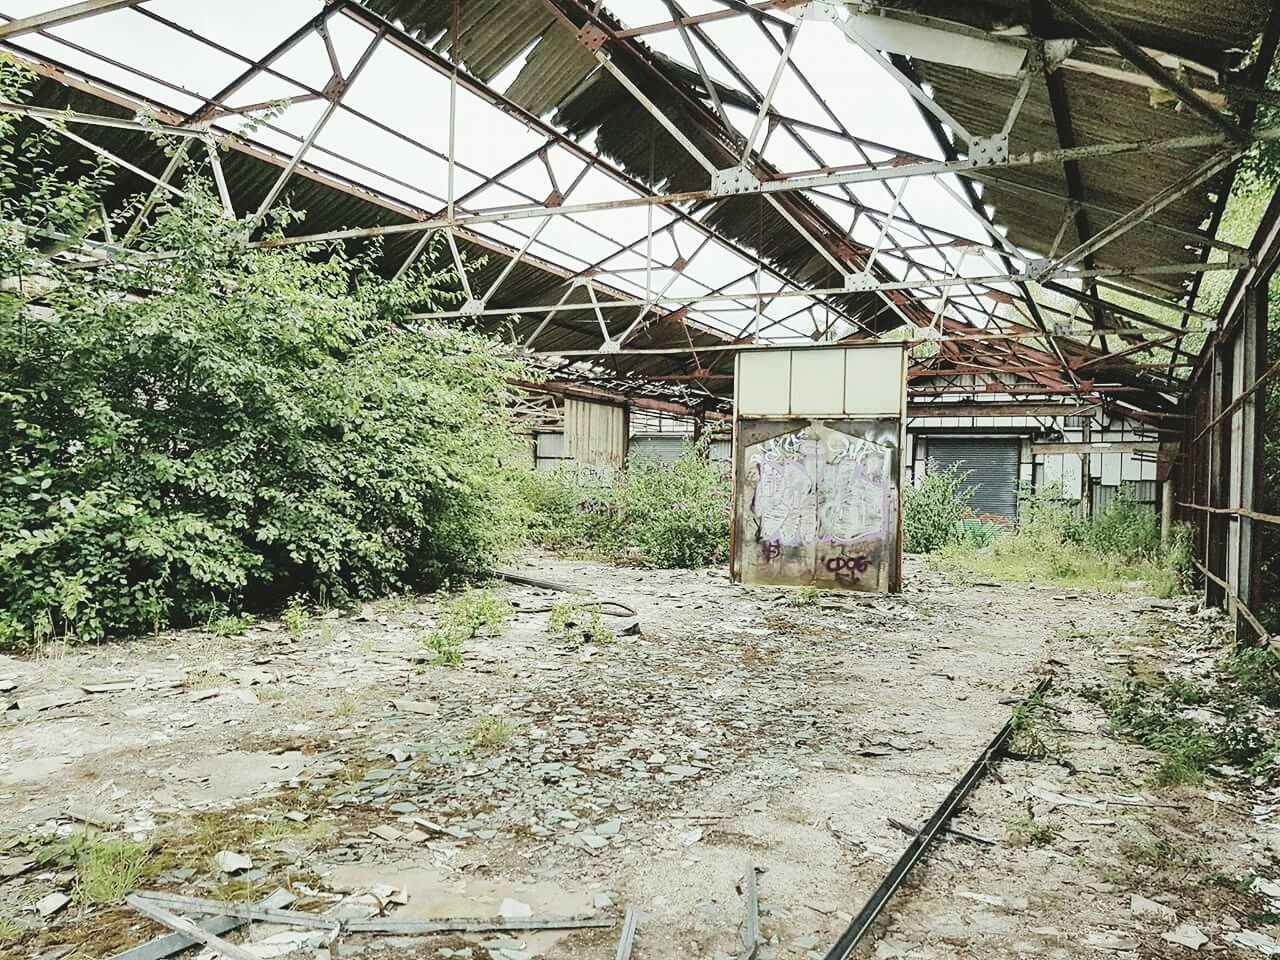 Architecture Built Structure Abandoned Messy Obsolete Worn Out Ruined Day Discarded Damaged Bad Condition Dirt Dirty Deterioration No People Girder